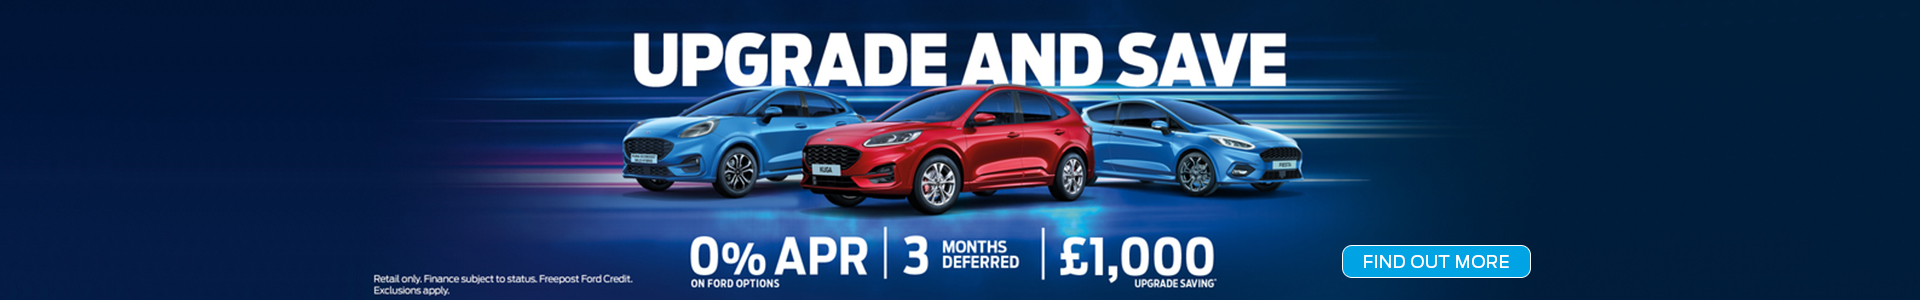 Upgrade and Save on Ford Cars